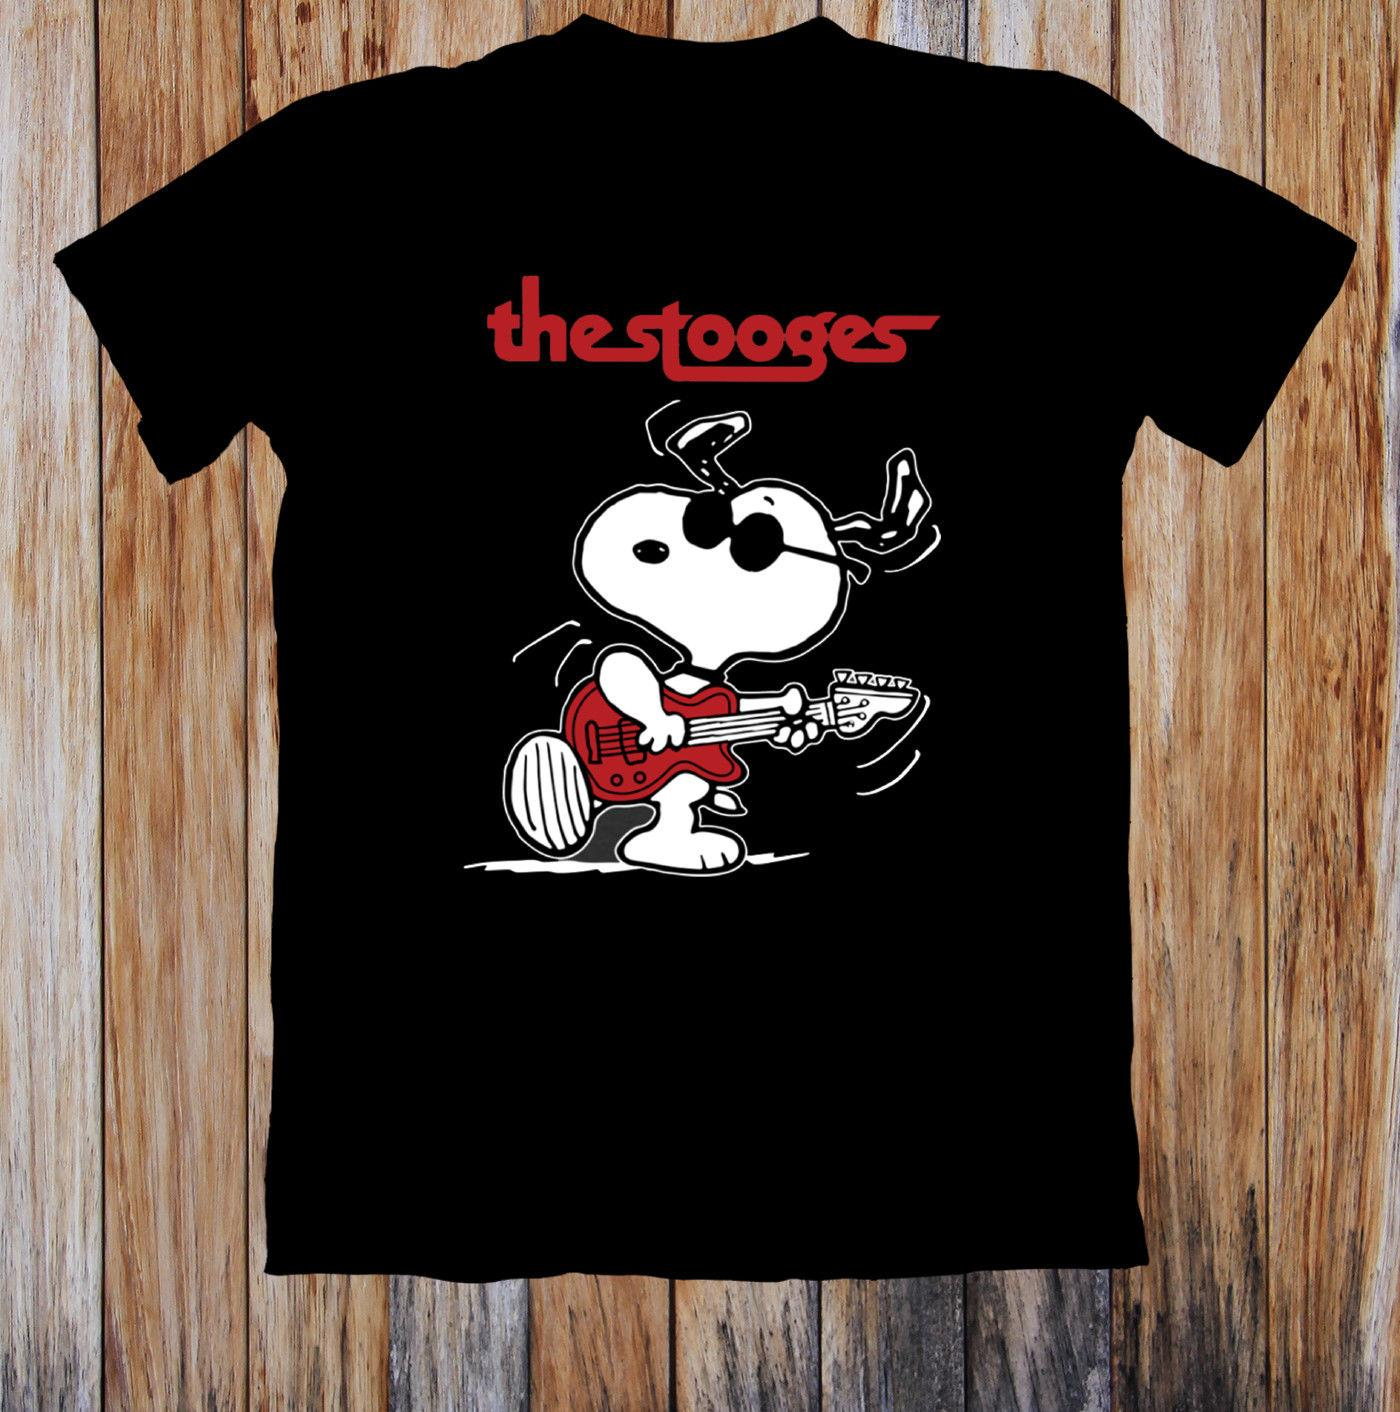 aebfa7c5c Snoopy Iggy Pop And The Stooges Unisex T Shirt Design Your Own T Shirts  Womens Shirt From Lanshiren3, $11.64| DHgate.Com